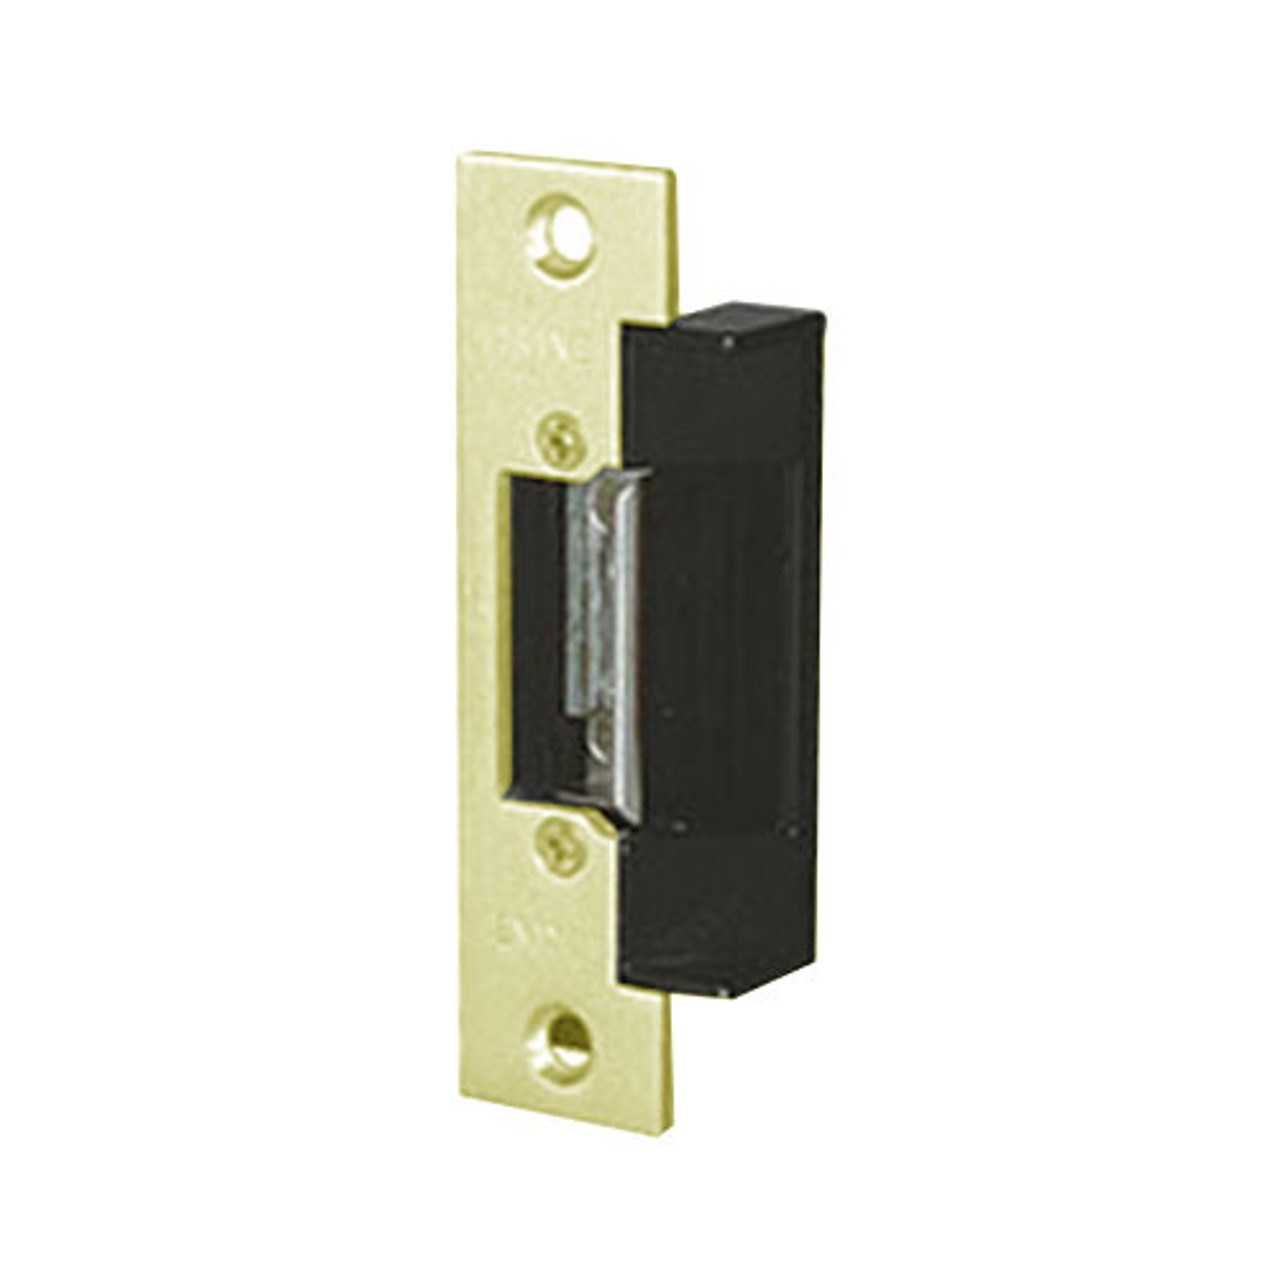 2012-RS-12DC Trine Light Commercial Adjustable 2000 Series Fail Safe Electric Strikes in Brass Powder Finish